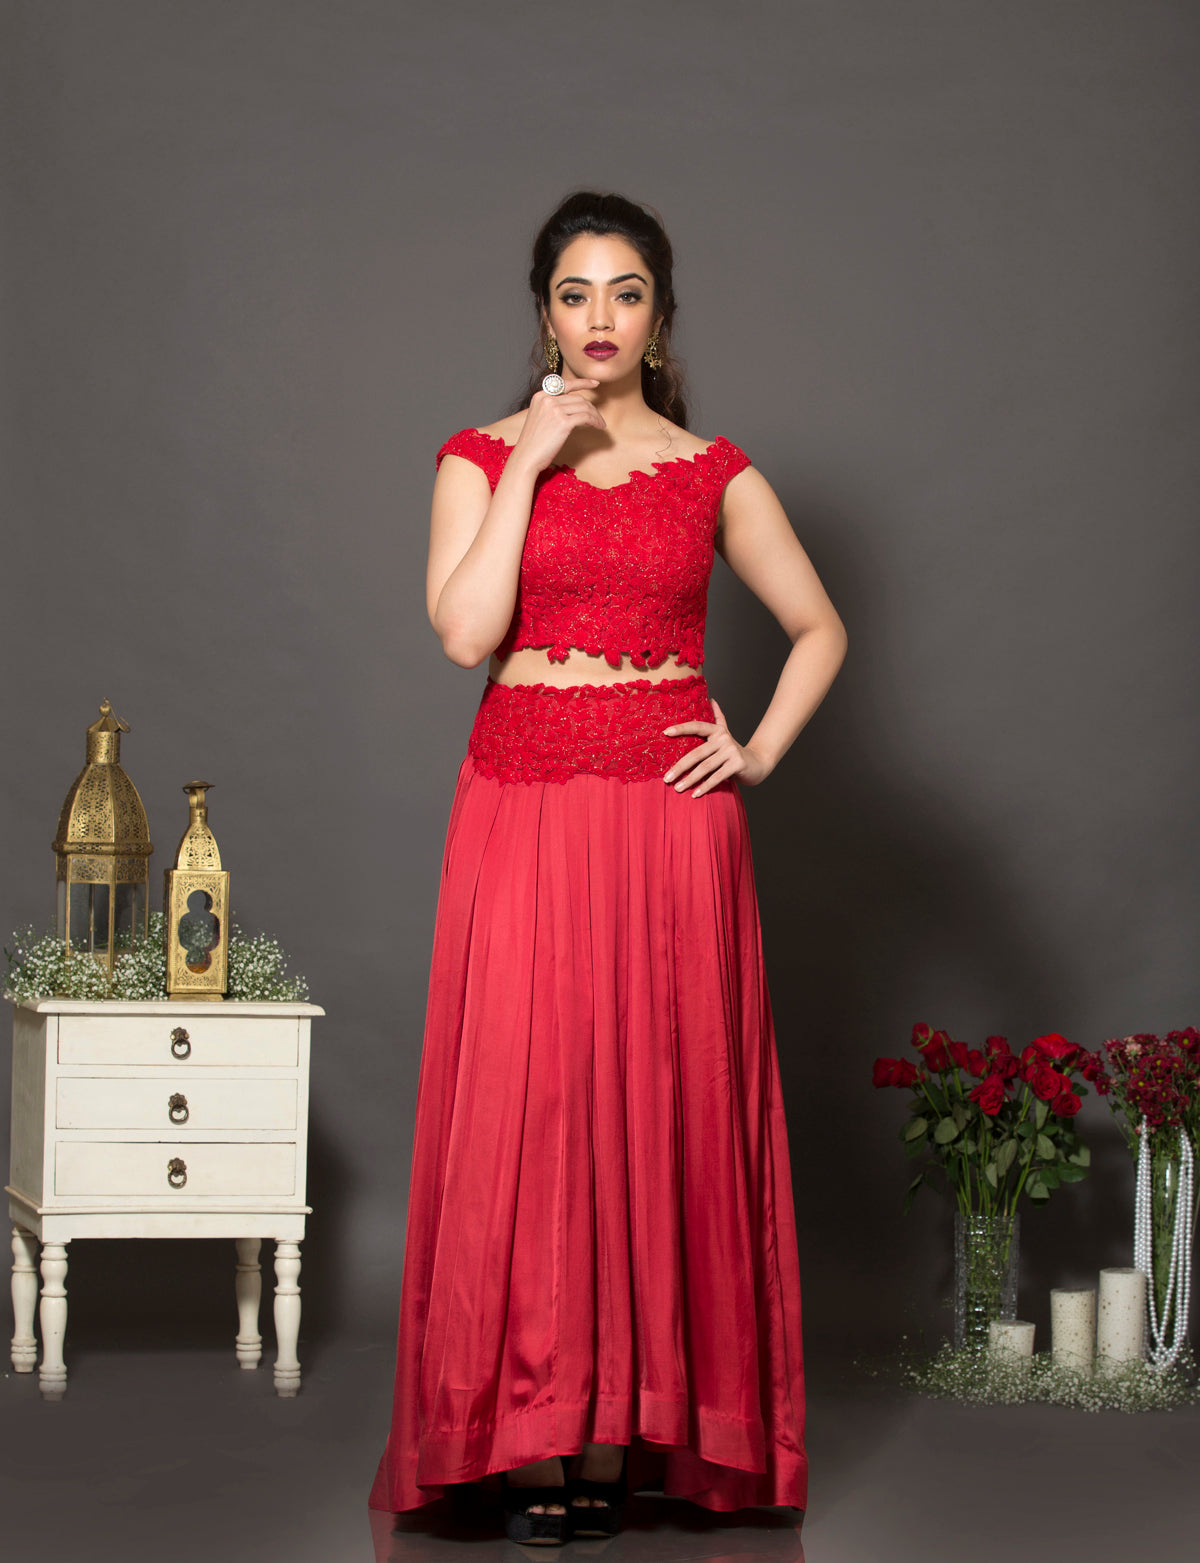 A red off-shoulder lehenga set in cotton satin that has an intricate thread work detailing all over the blouse and the belt.